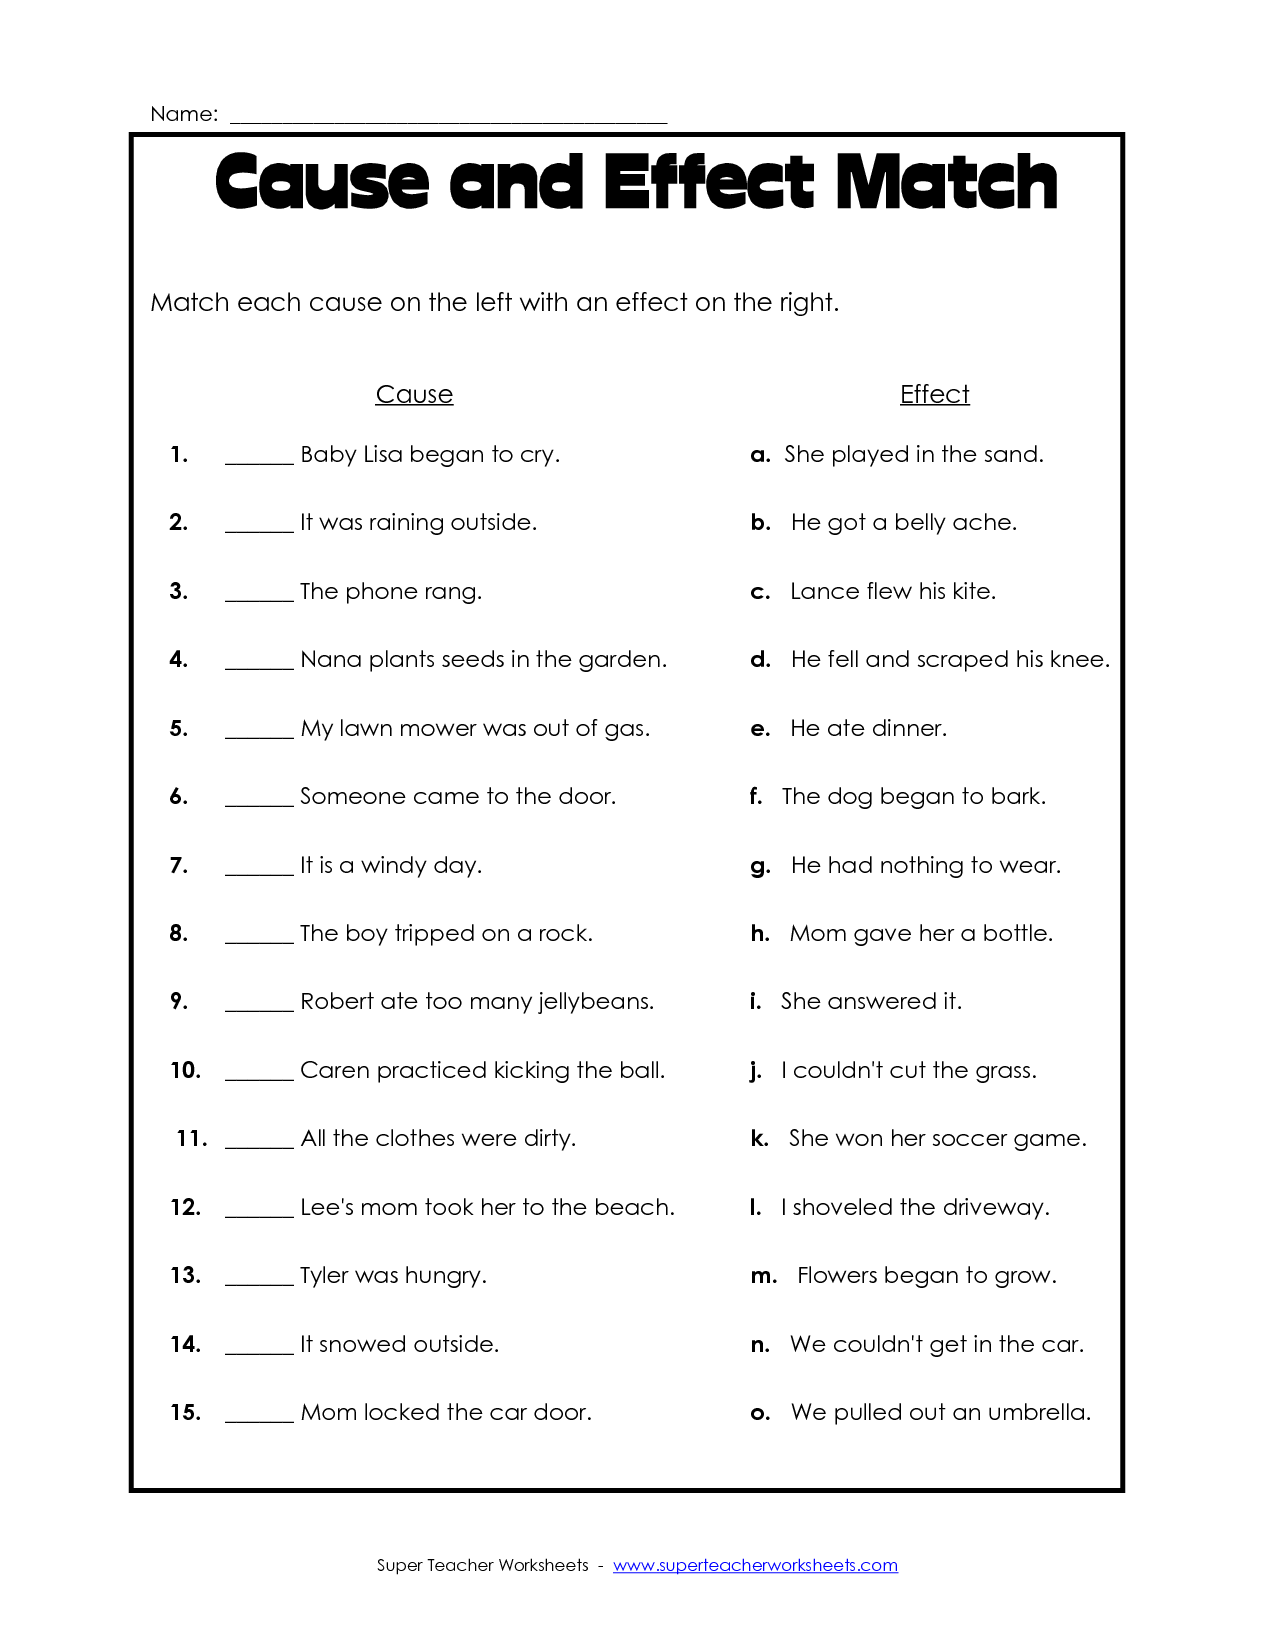 medium resolution of 22 Daily Five Cause and Effect ideas   cause and effect